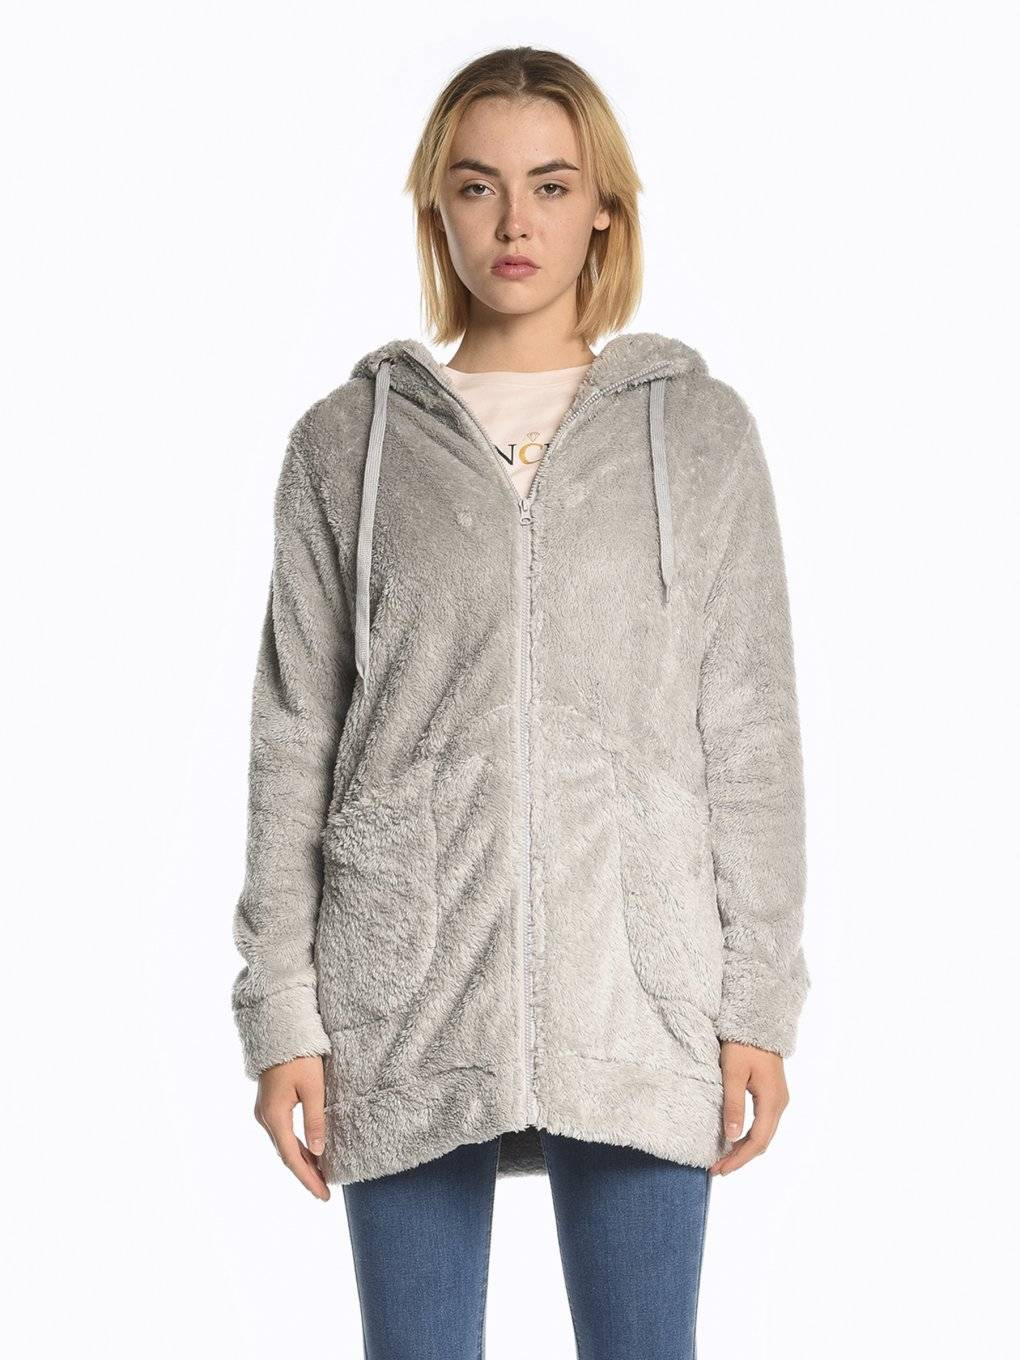 Fluffy longline sweatshirt with zipper